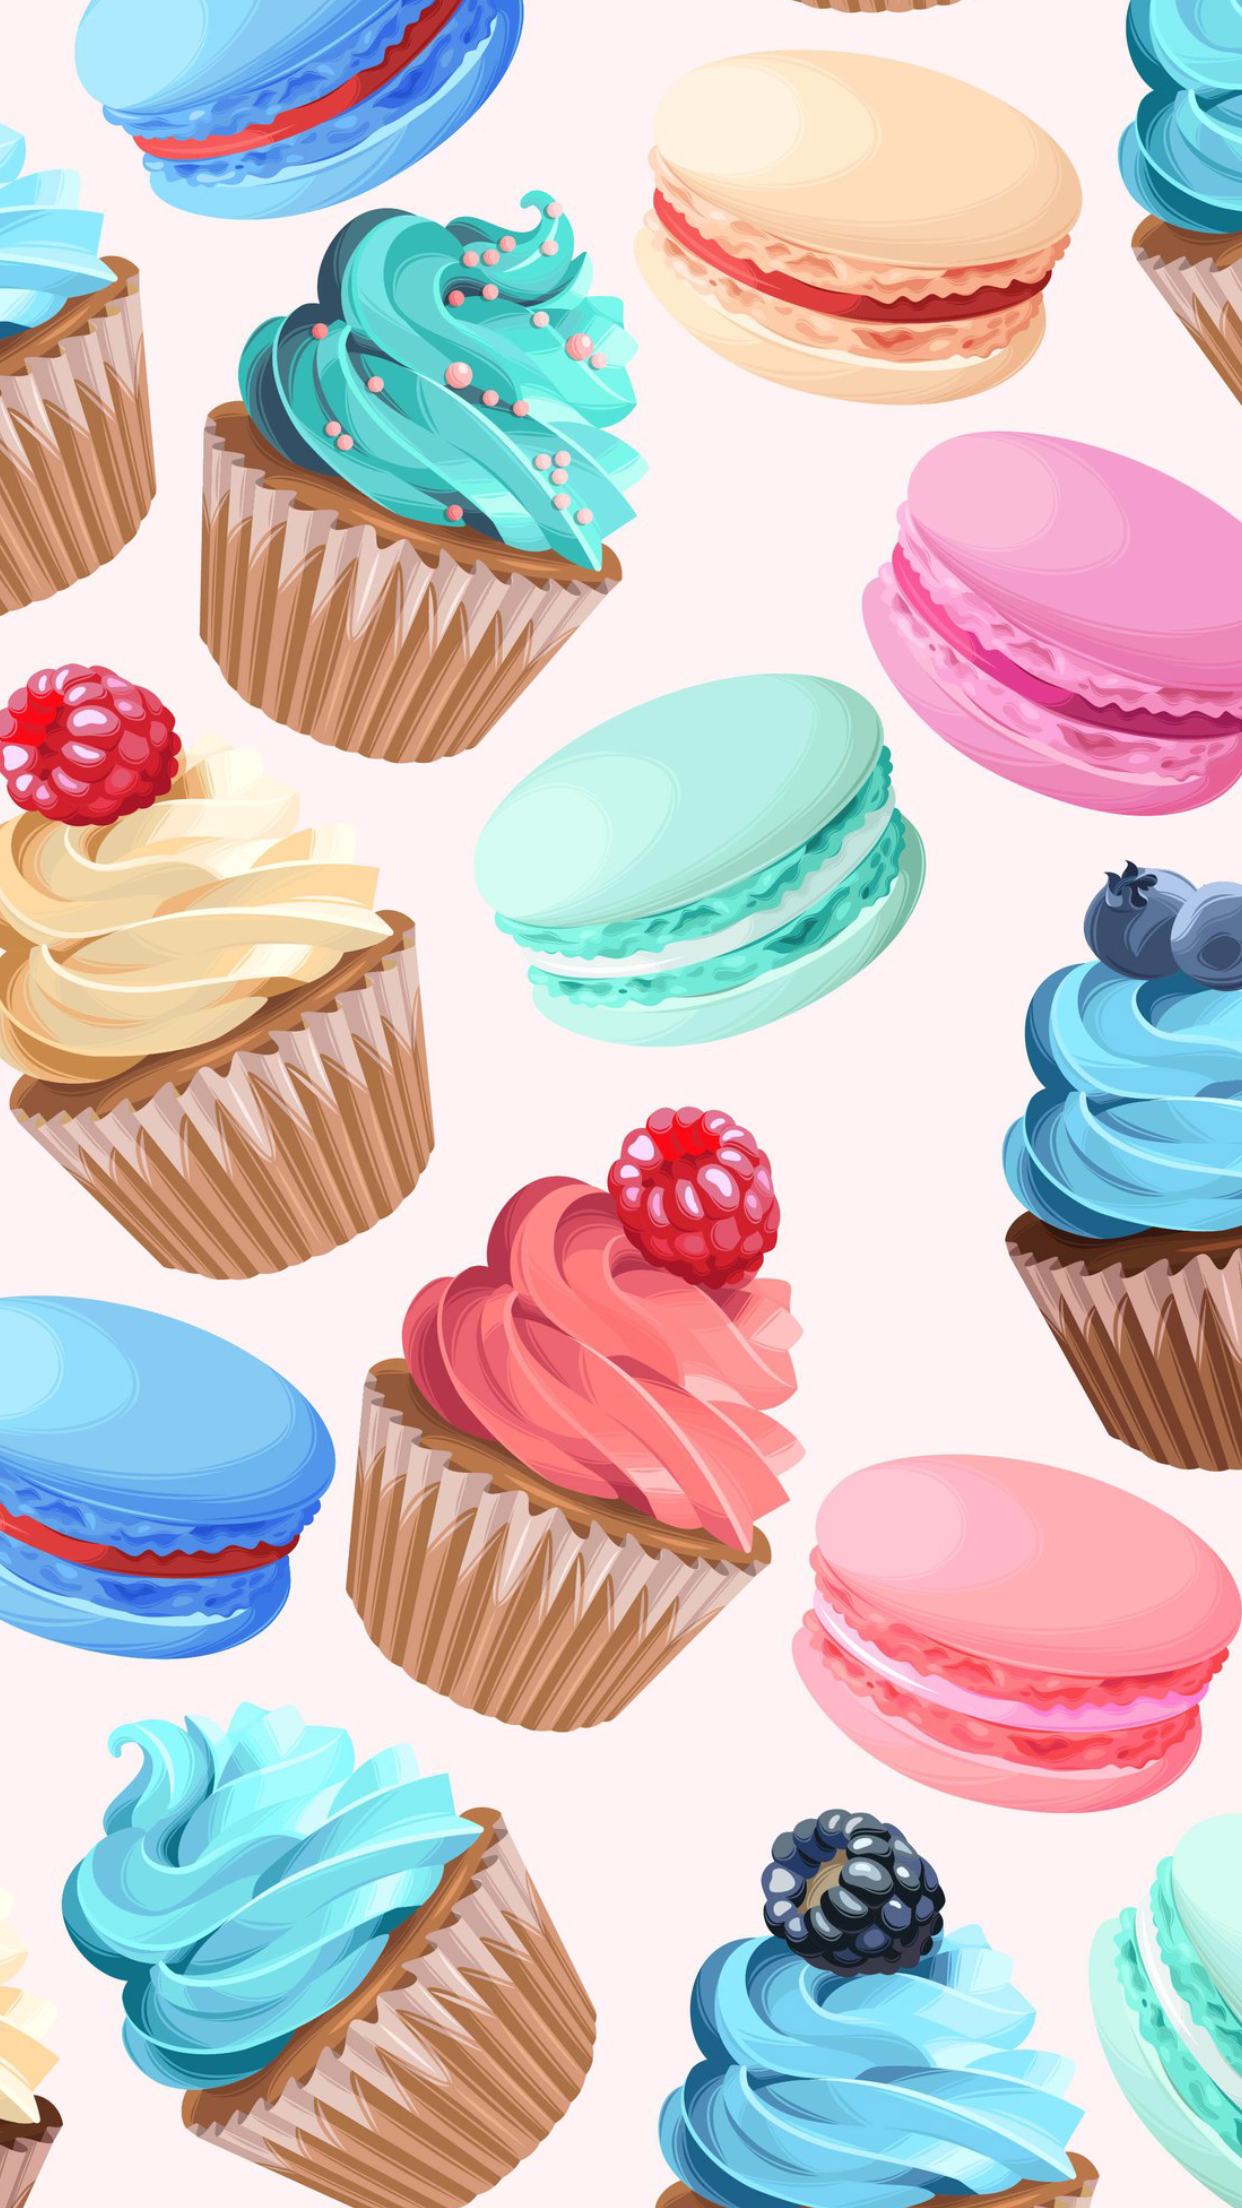 Yummy Treats For A Colorful Day Cupcakes Wallpaper Food Screen